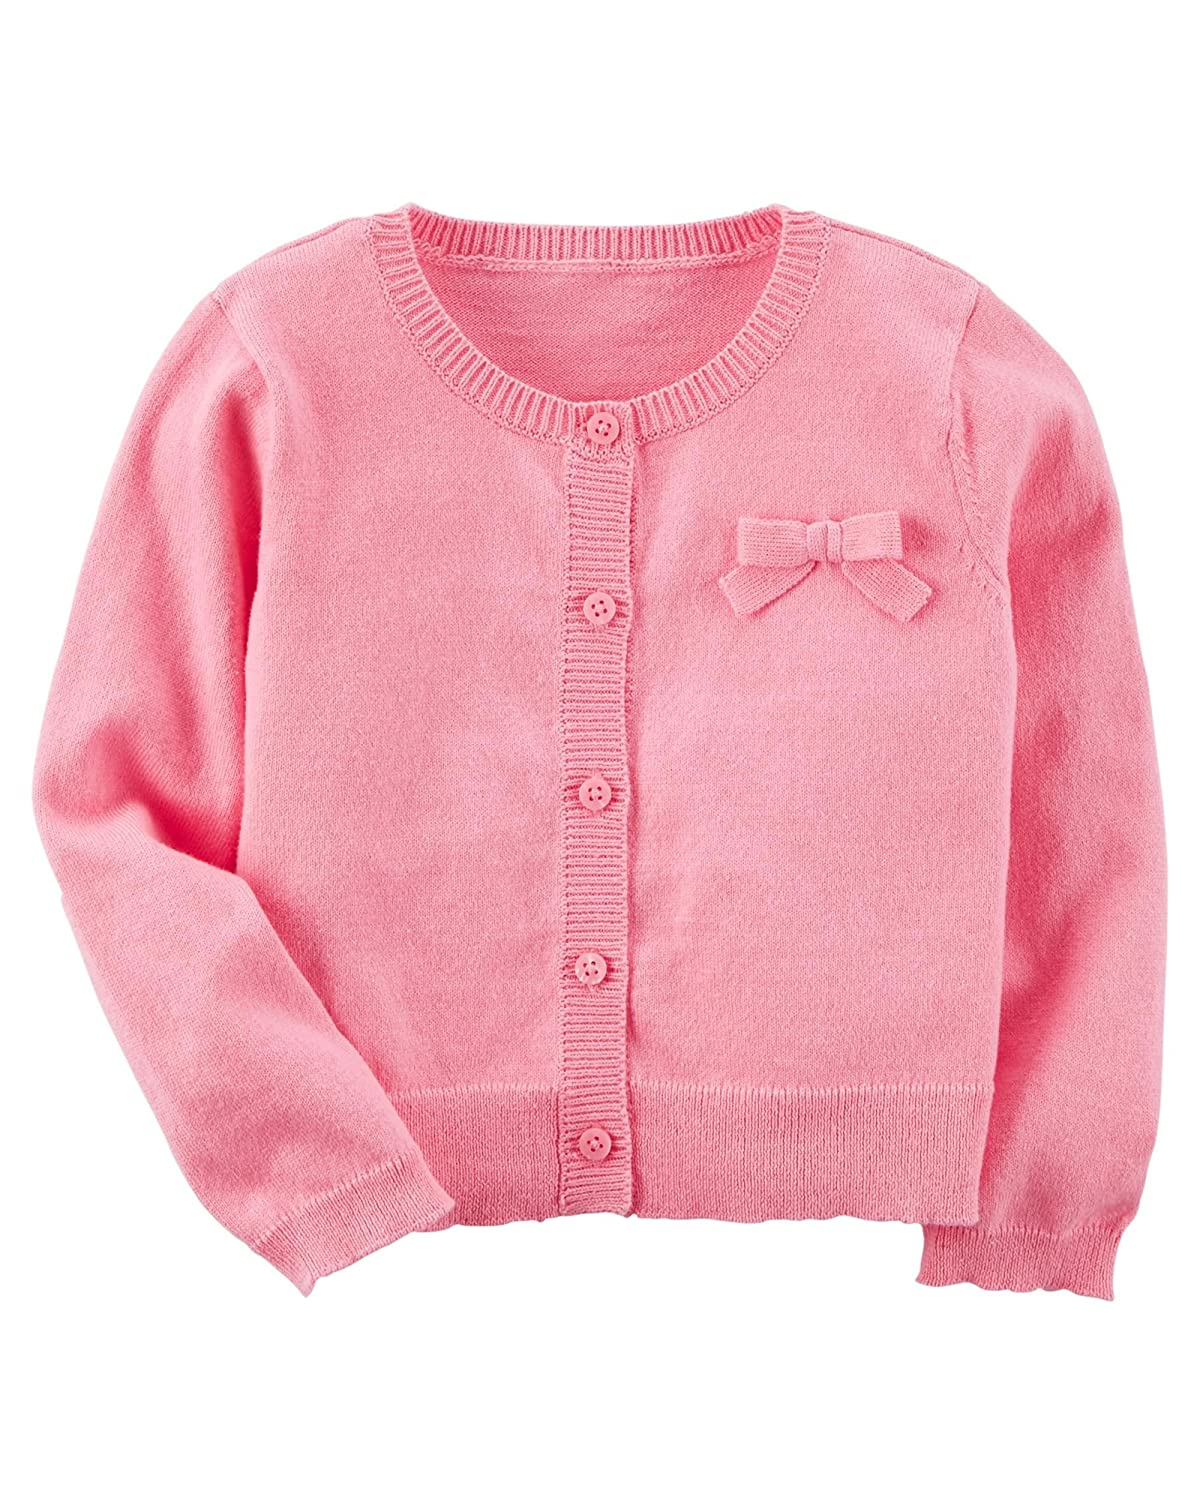 e0068eef4399 Amazon.com  Carter s Baby Girls Cotton Cardigan Sweater